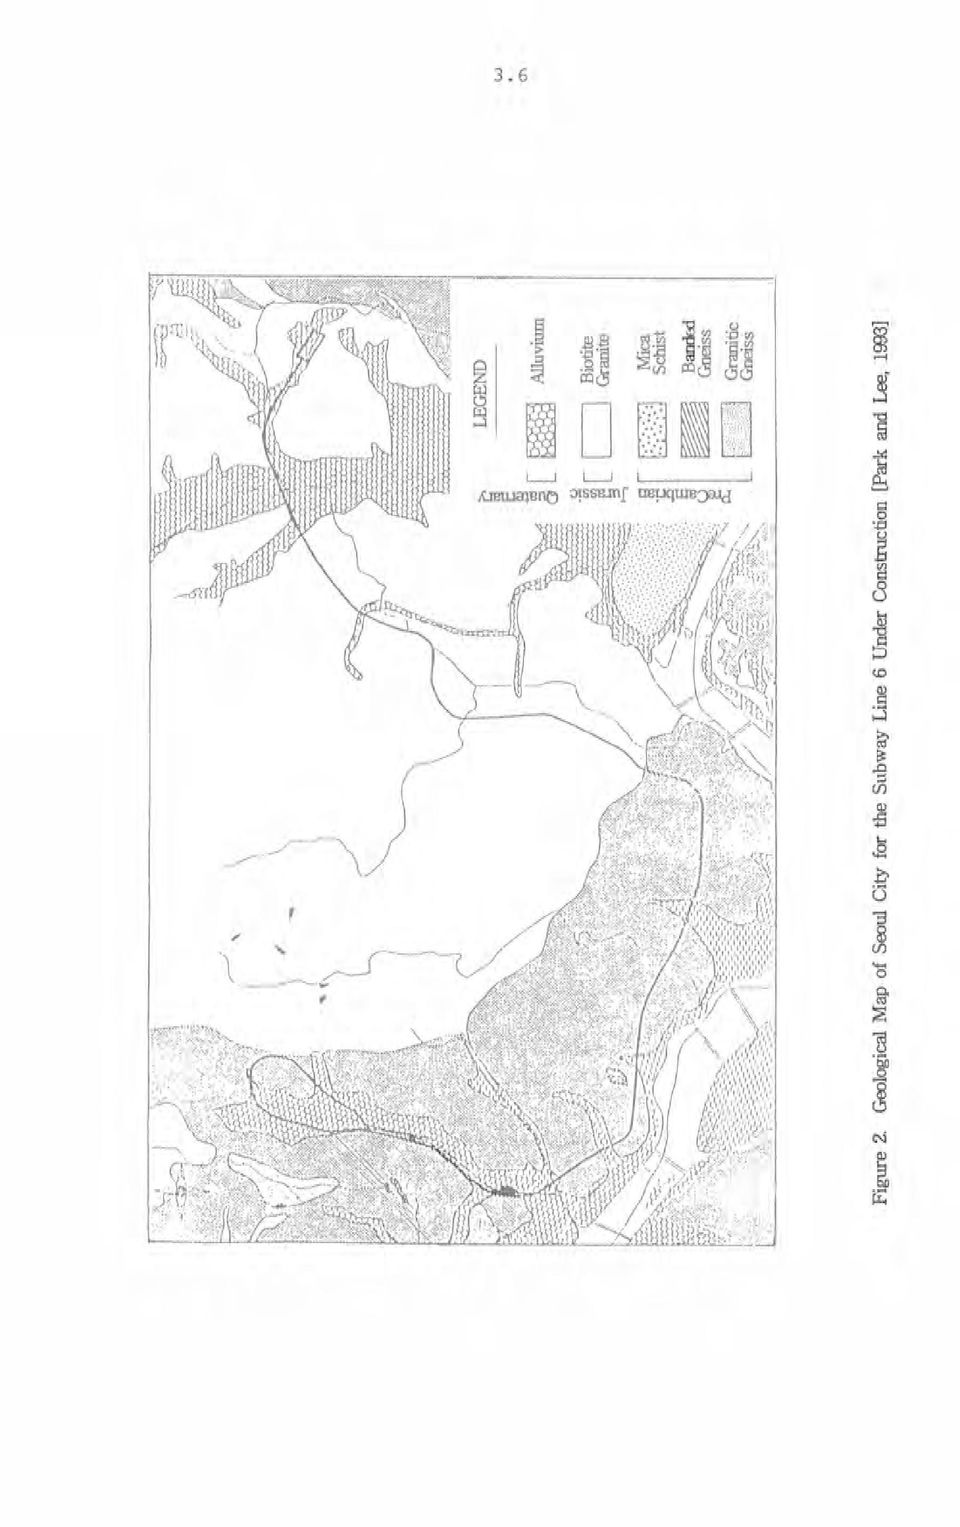 Geological Map of Seoul City for the Subway Line 6